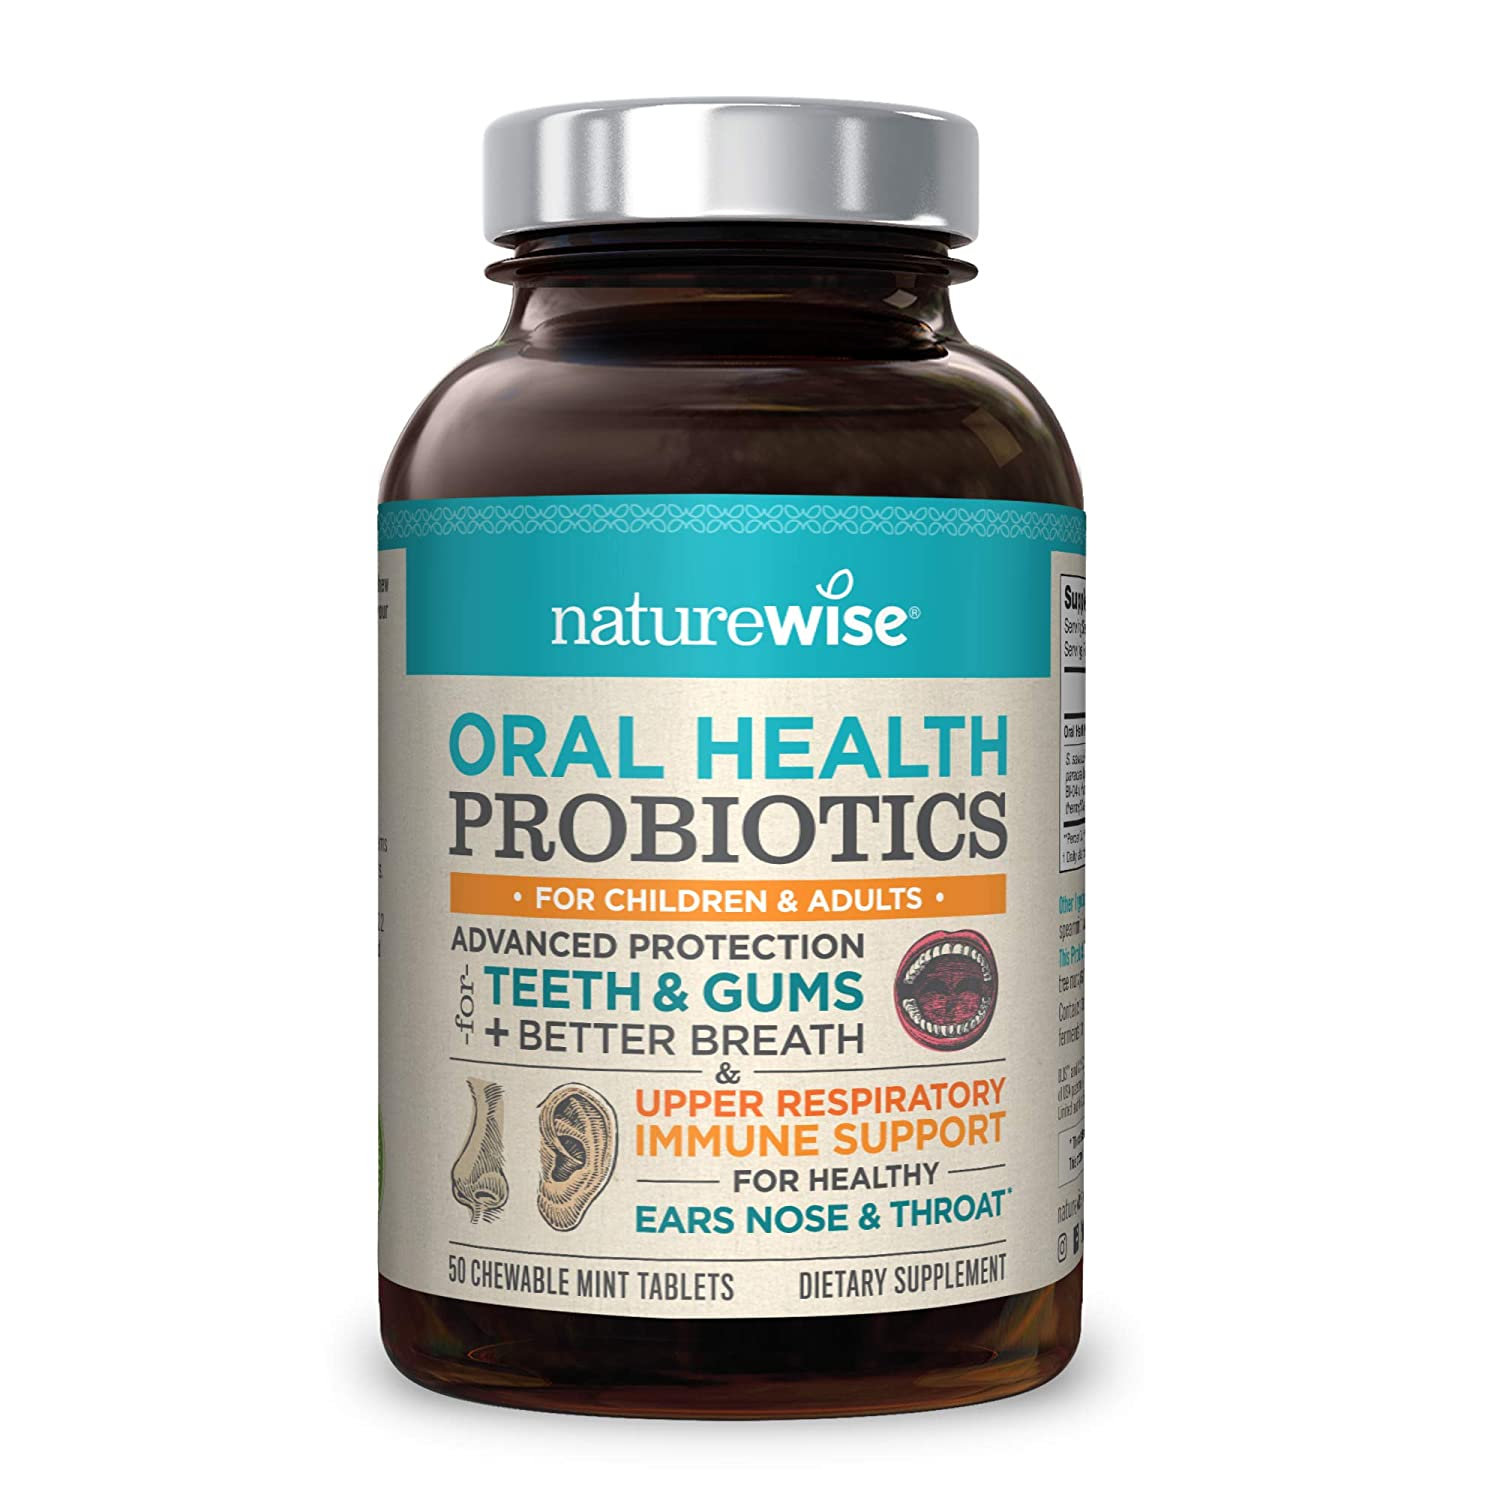 NatureWise Oral Health Chewable Probiotics | Supports Healthy Teeth, Gums,  Better Breath | Ear,